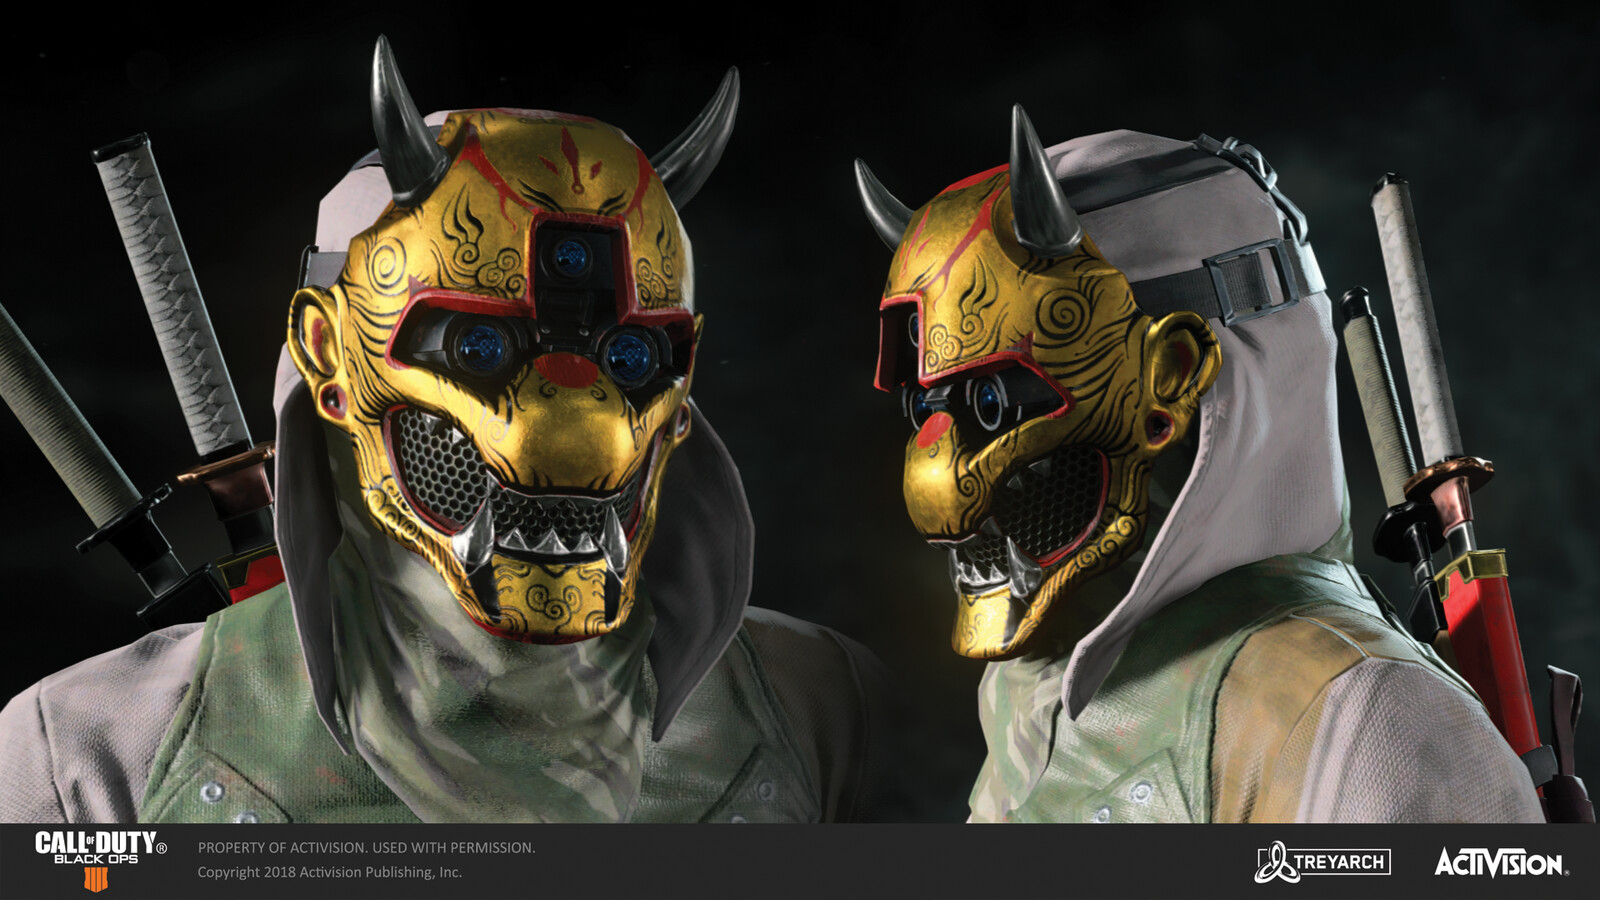 Responsible for texturing Spectre's golden mask variant (warpaint) for the 'Ninja' skin, released during the Operation Spectre Rising DLC. The mask and body models were made by our awesome external partners at RedHotCG.